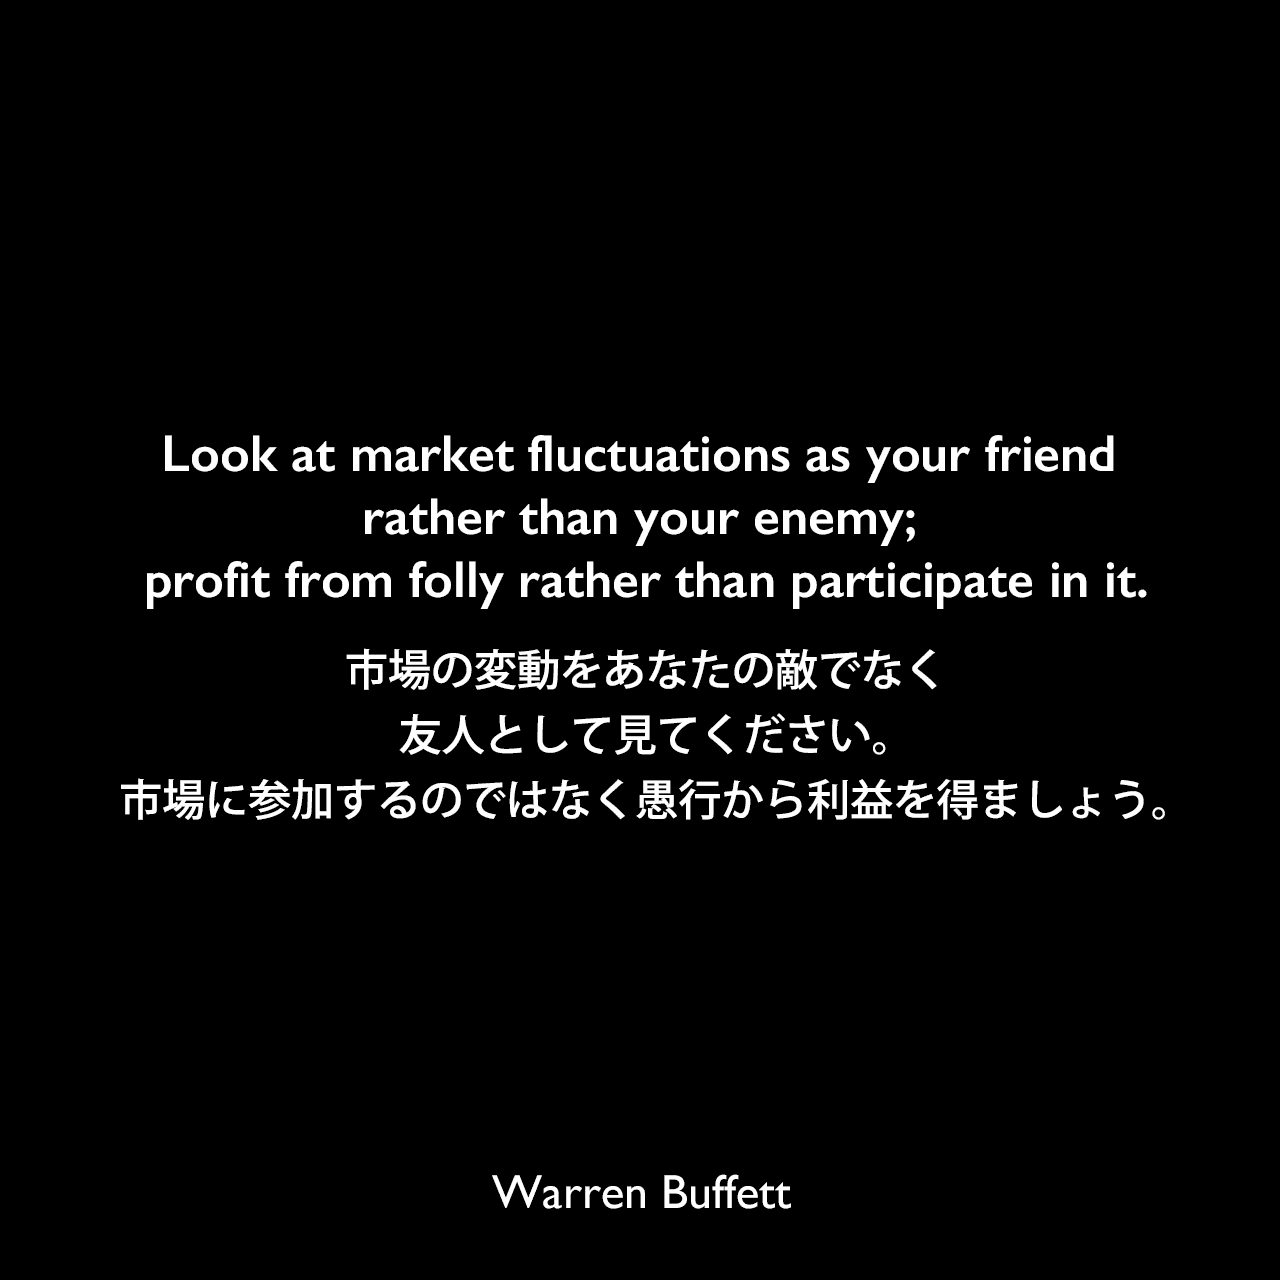 Look at market fluctuations as your friend rather than your enemy; profit from folly rather than participate in it.市場の変動をあなたの敵でなく友人として見てください。市場に参加するのではなく愚行から利益を得ましょう。Warren Buffett